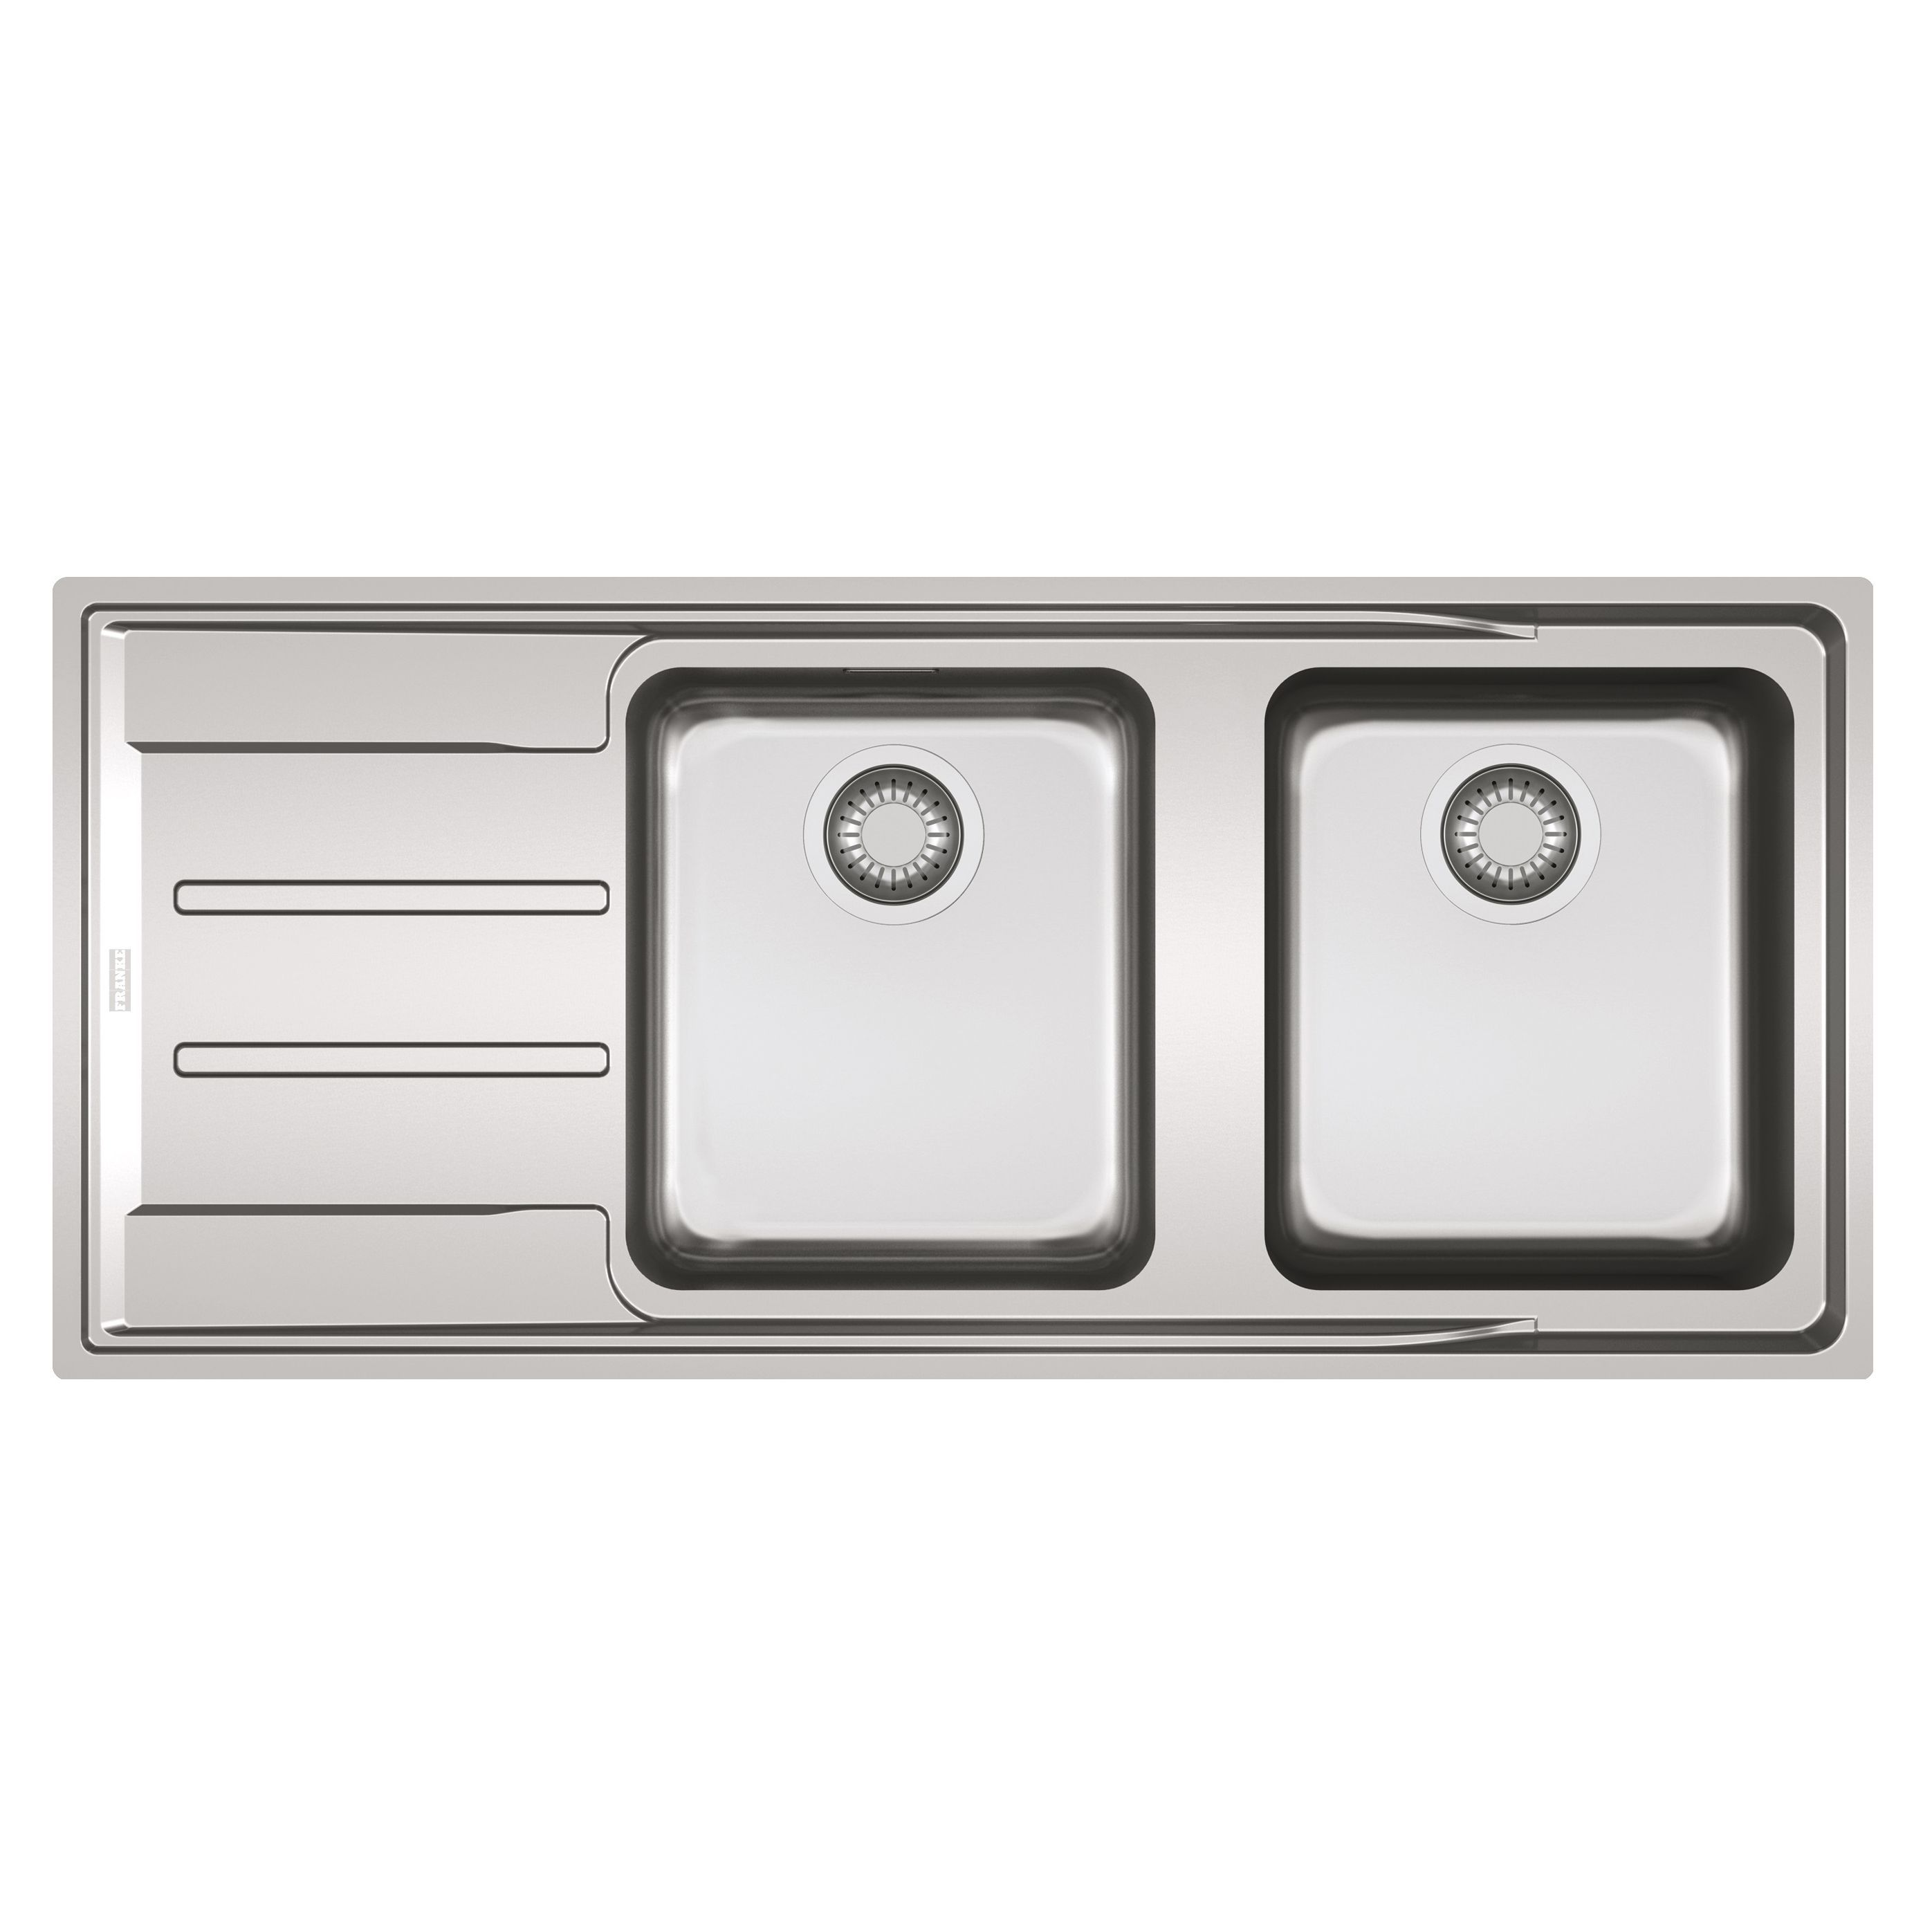 Low Profile Stainless Steel Kitchen Sinks